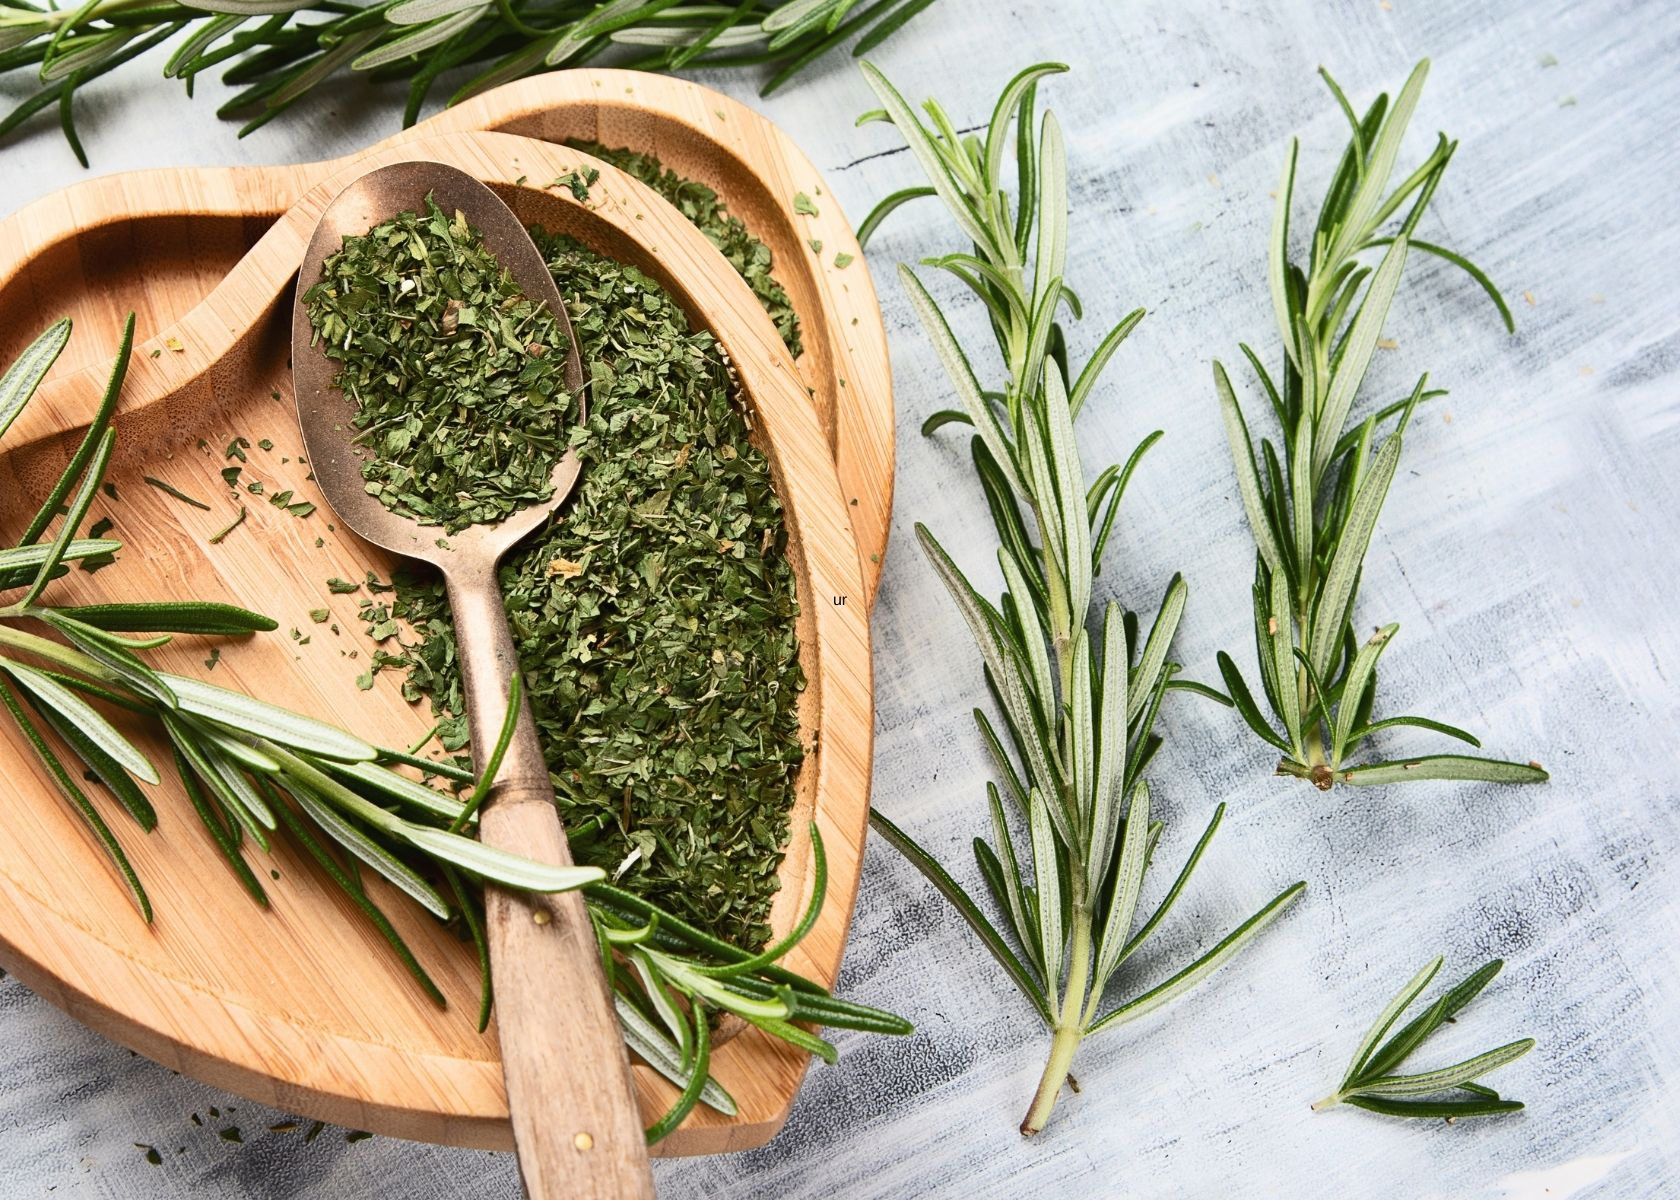 Dried rosemary in heart-shaped wooden bowl next to fresh twigs of rosemary.